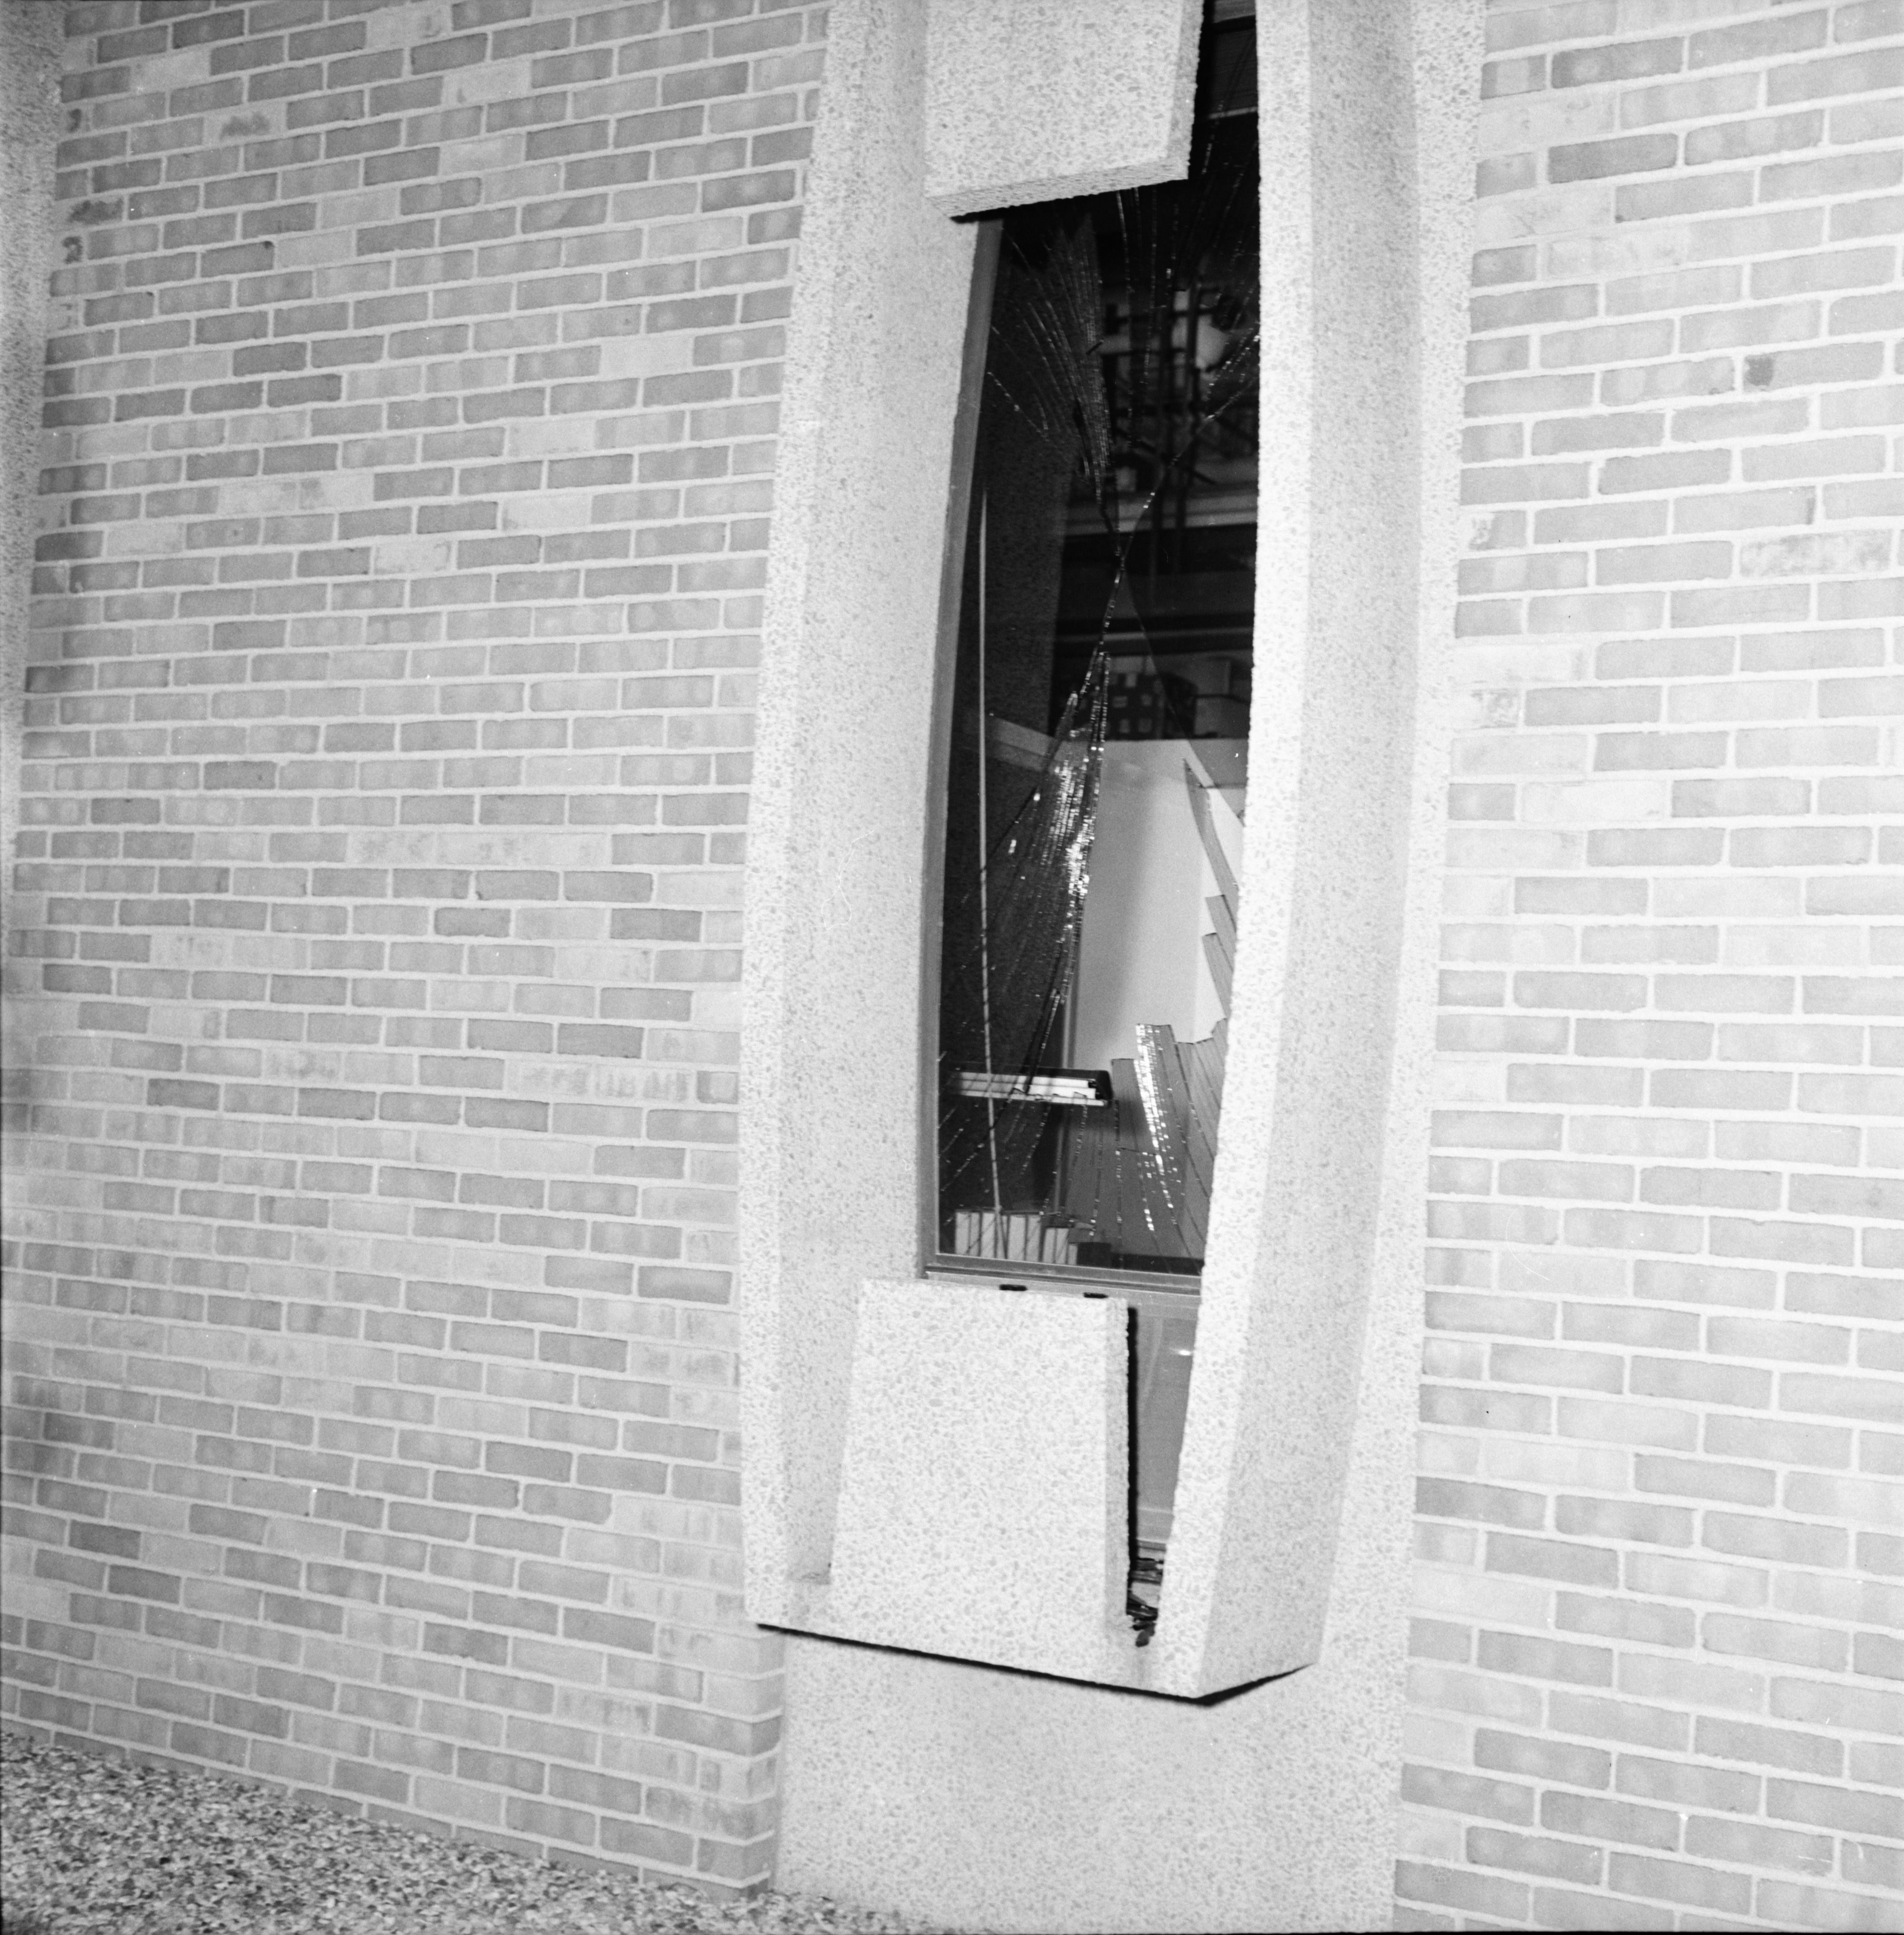 Window Blown Out by Bomb Blast at Institute of Science and Technology, University of Michigan image